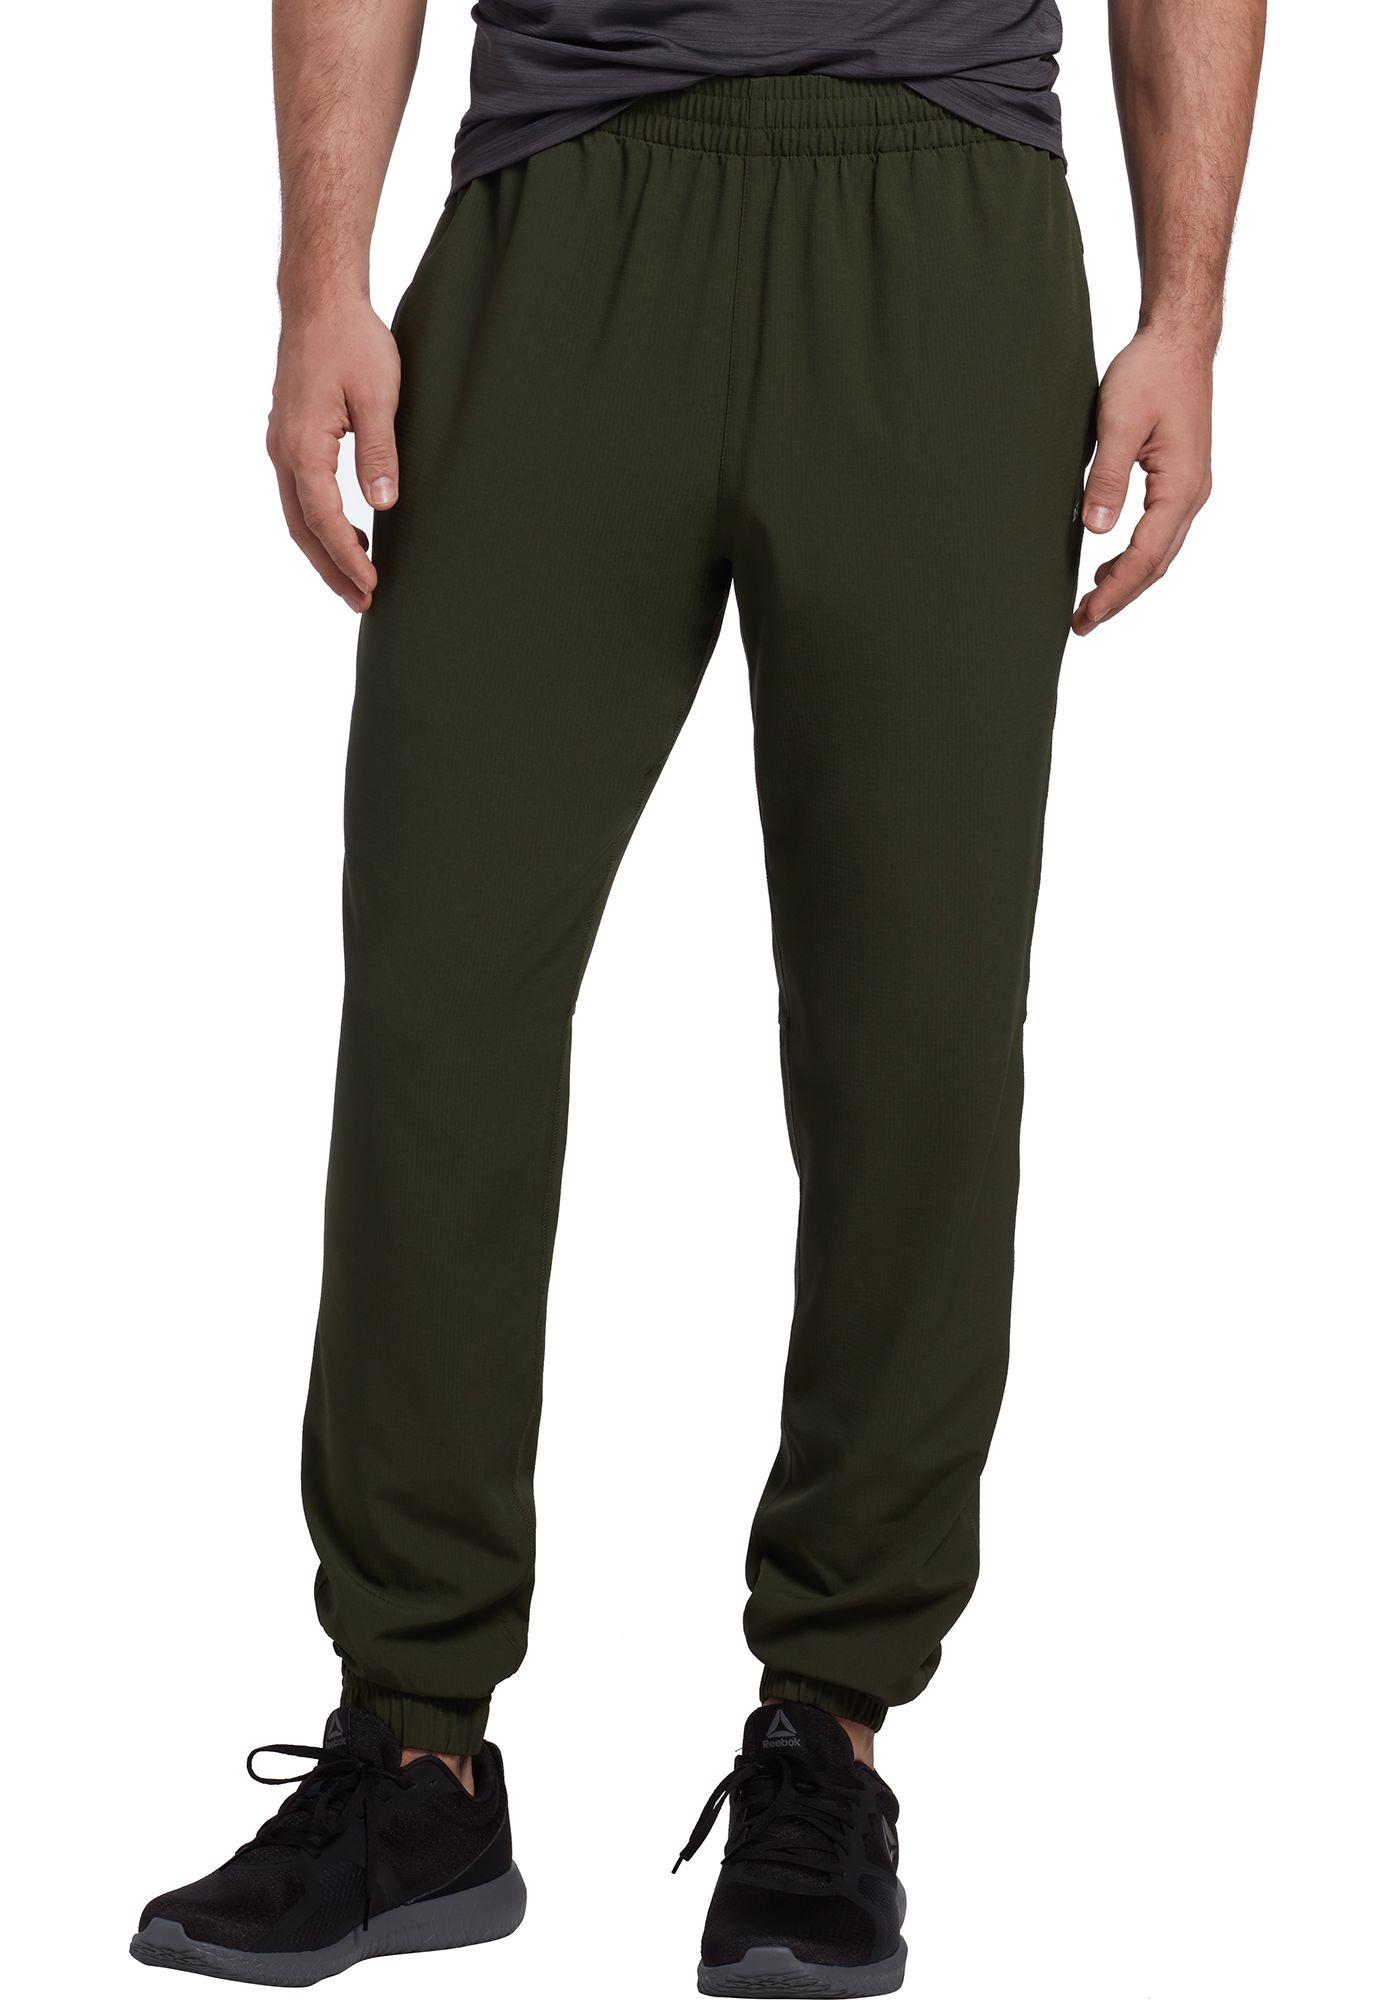 DSG Men's Woven Training Jogger Pants